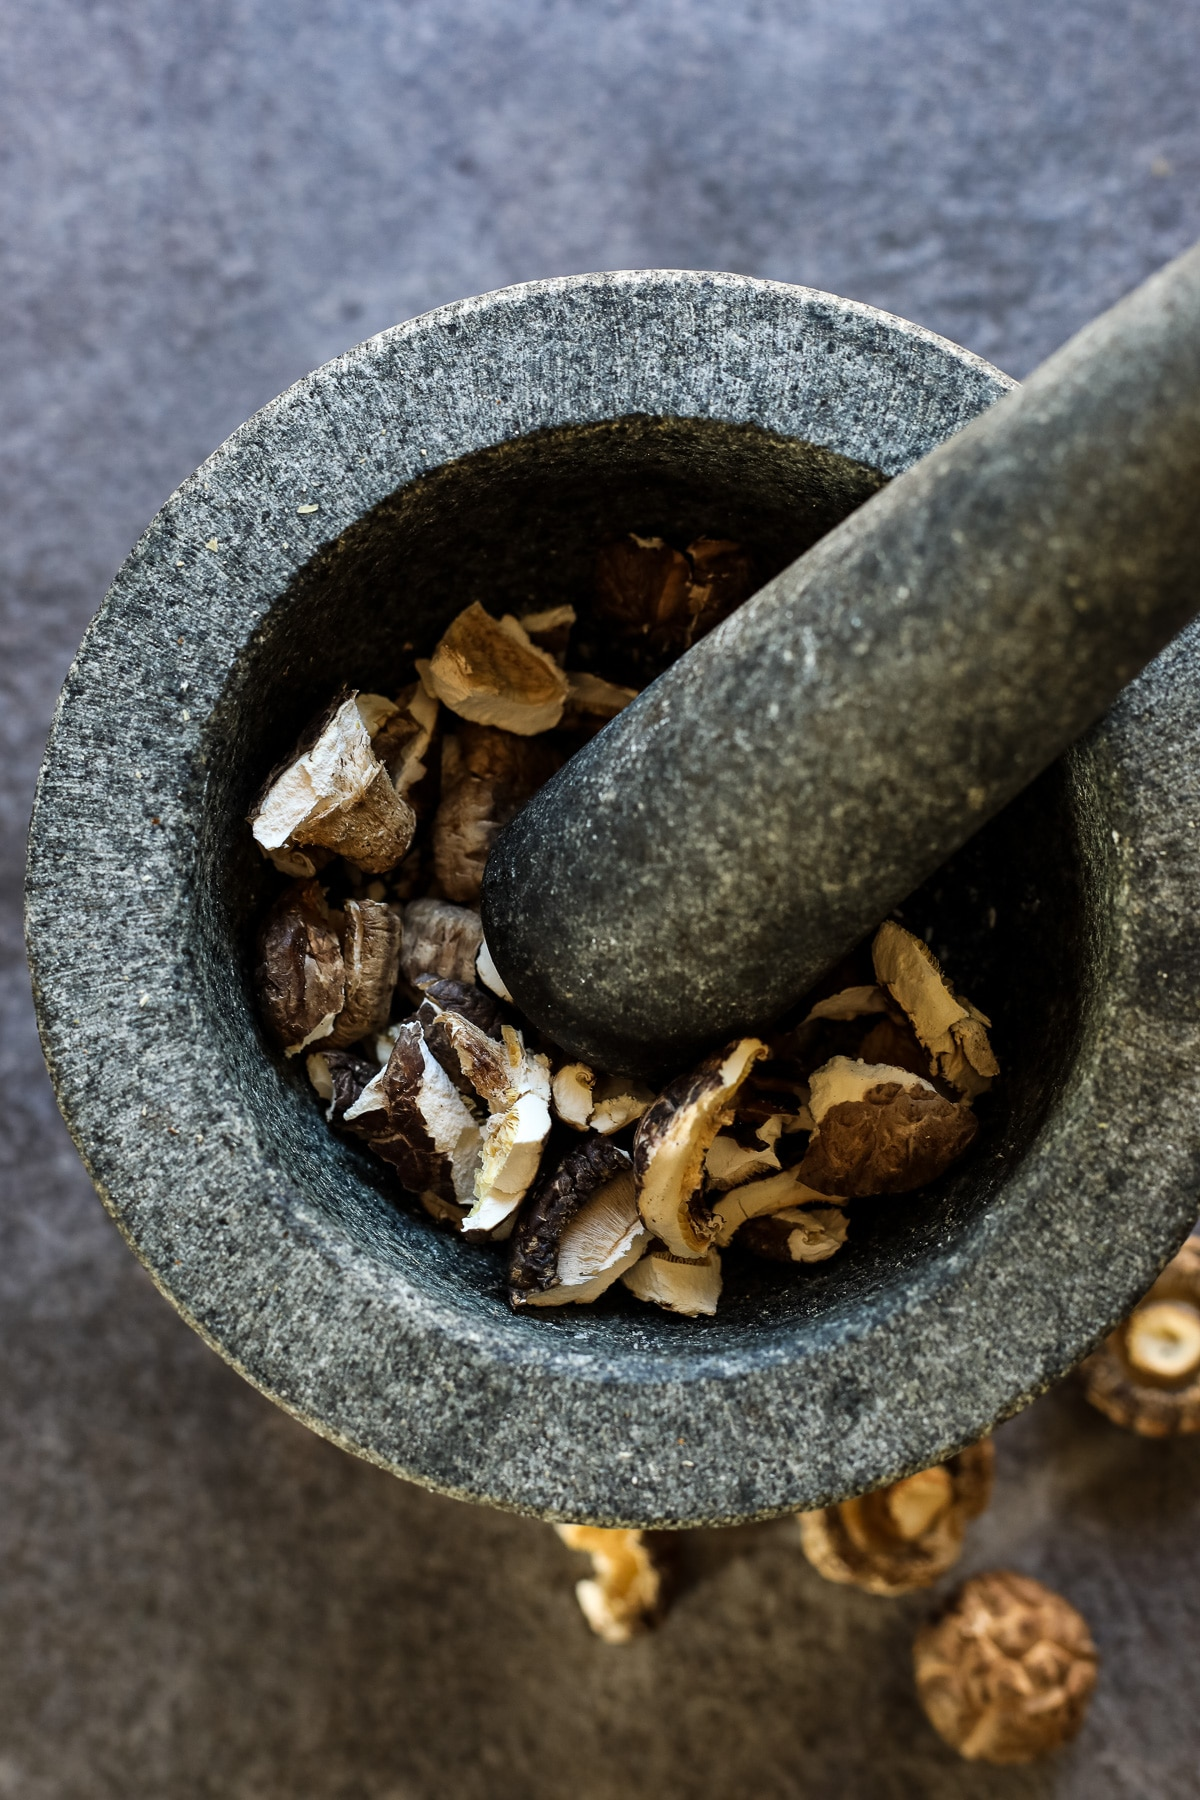 Breaking Dried Shiitake Mushrooms with a Mortar and Pestle.